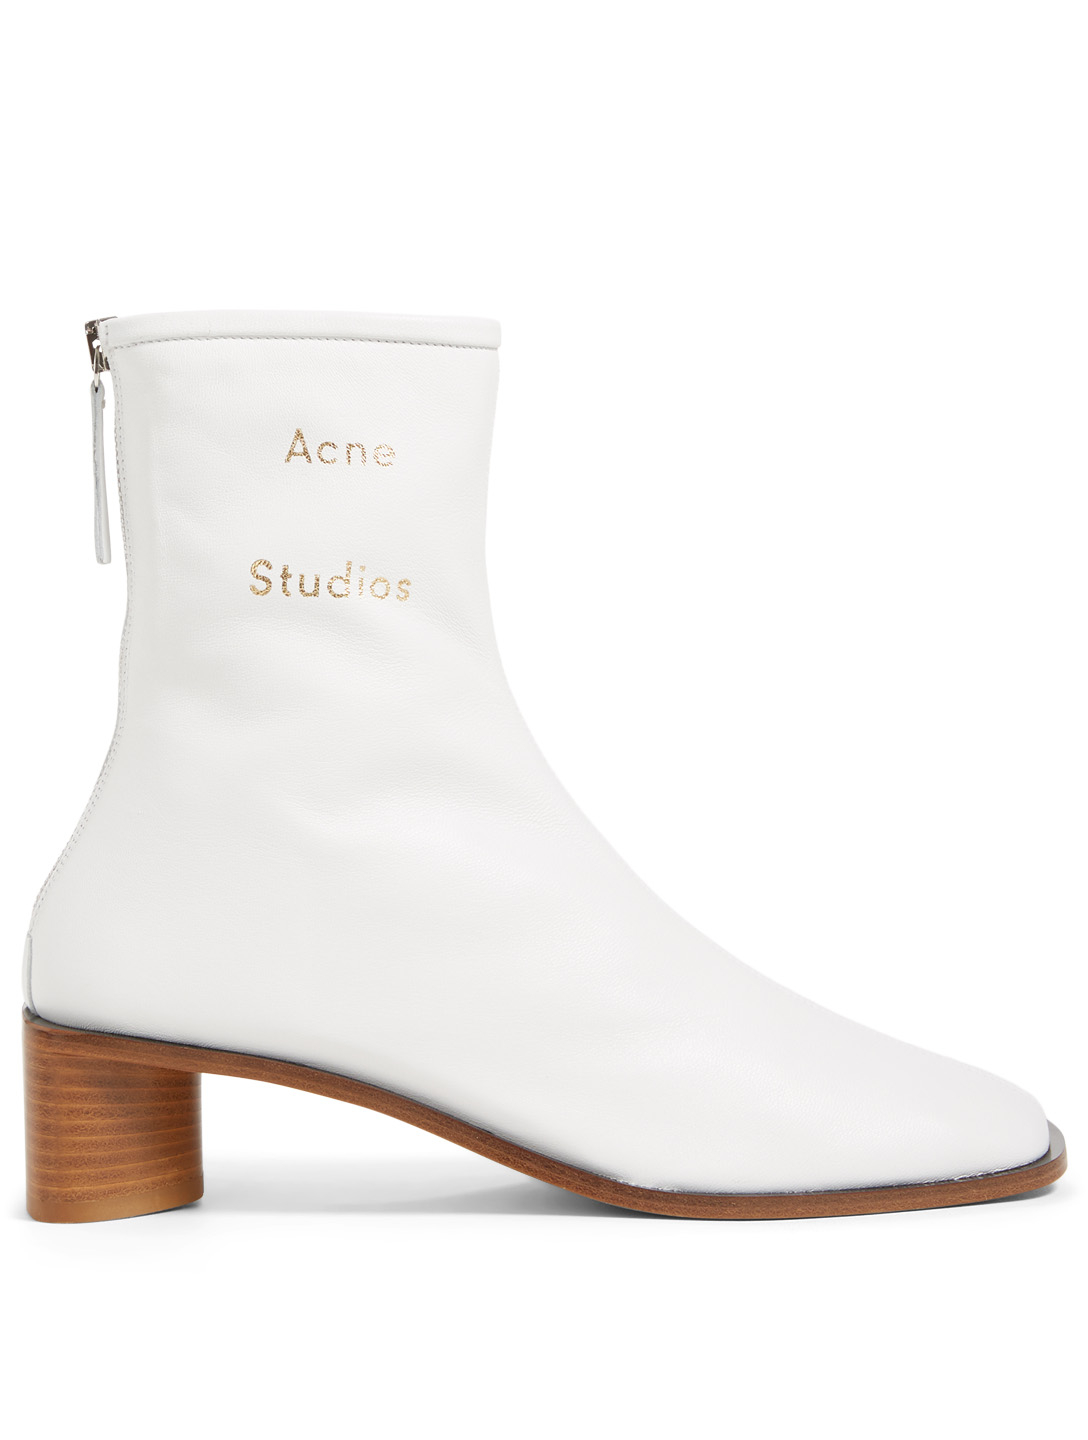 fc0b19dba2f88 ACNE STUDIOS Bertine Branded Leather Ankle Boots Women s White ...